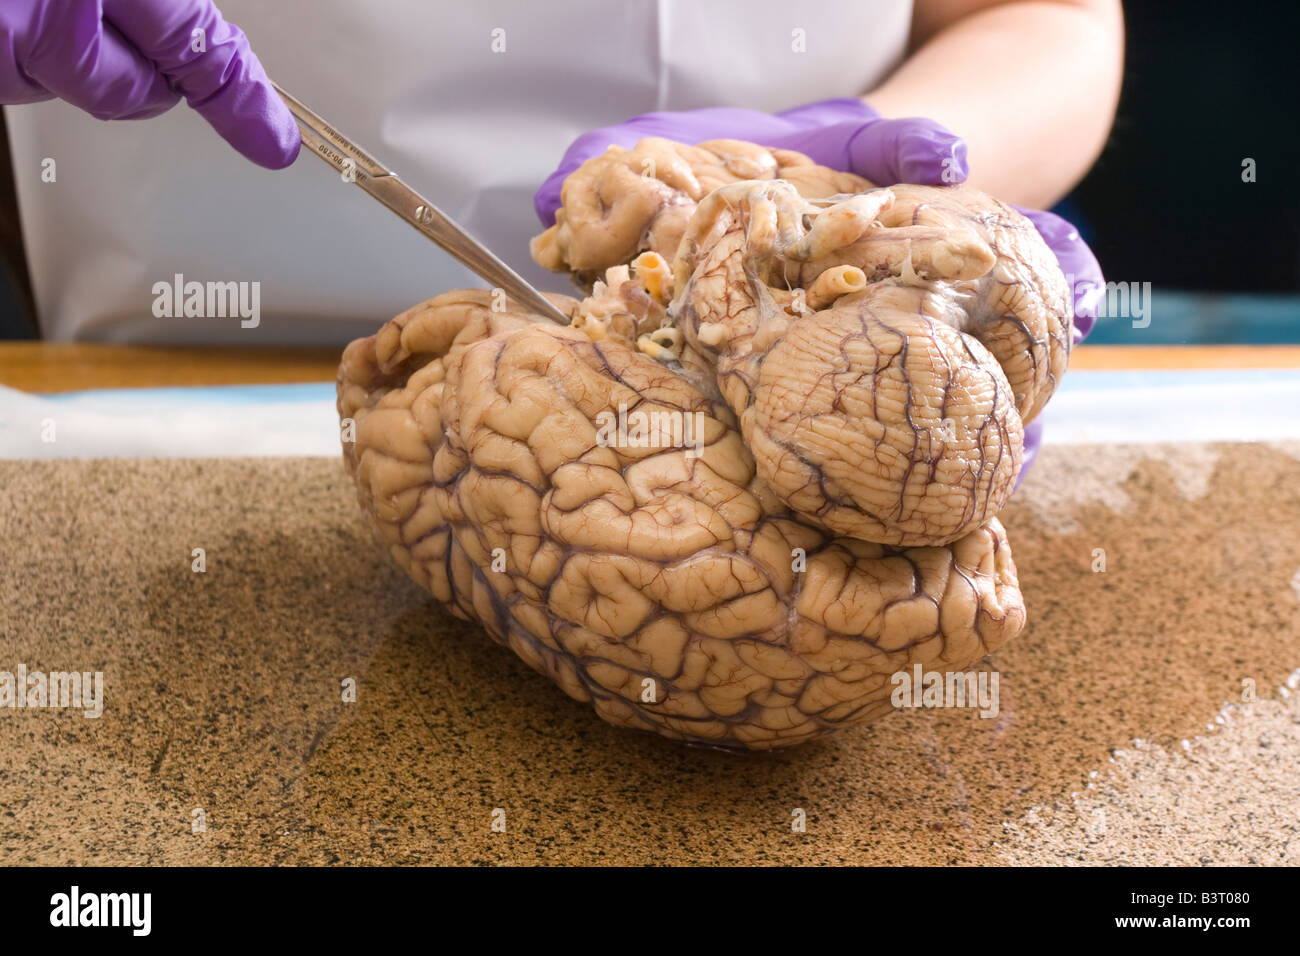 Dissection Of Human Brain Stock Photo Royalty Free Image